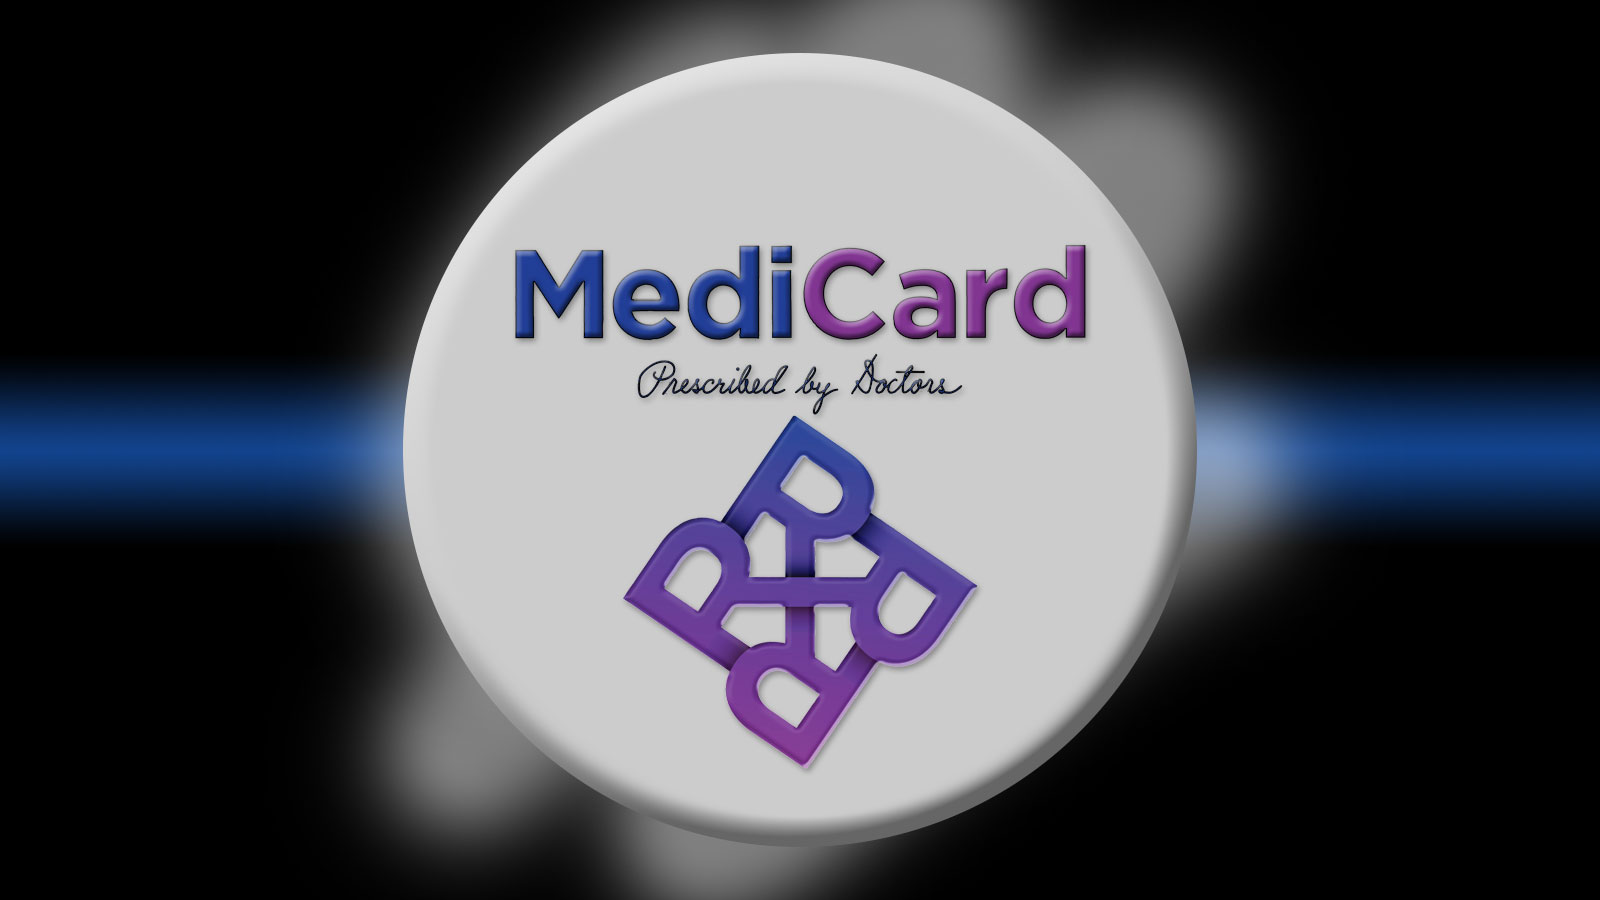 Limited offer for Medicard Rxer